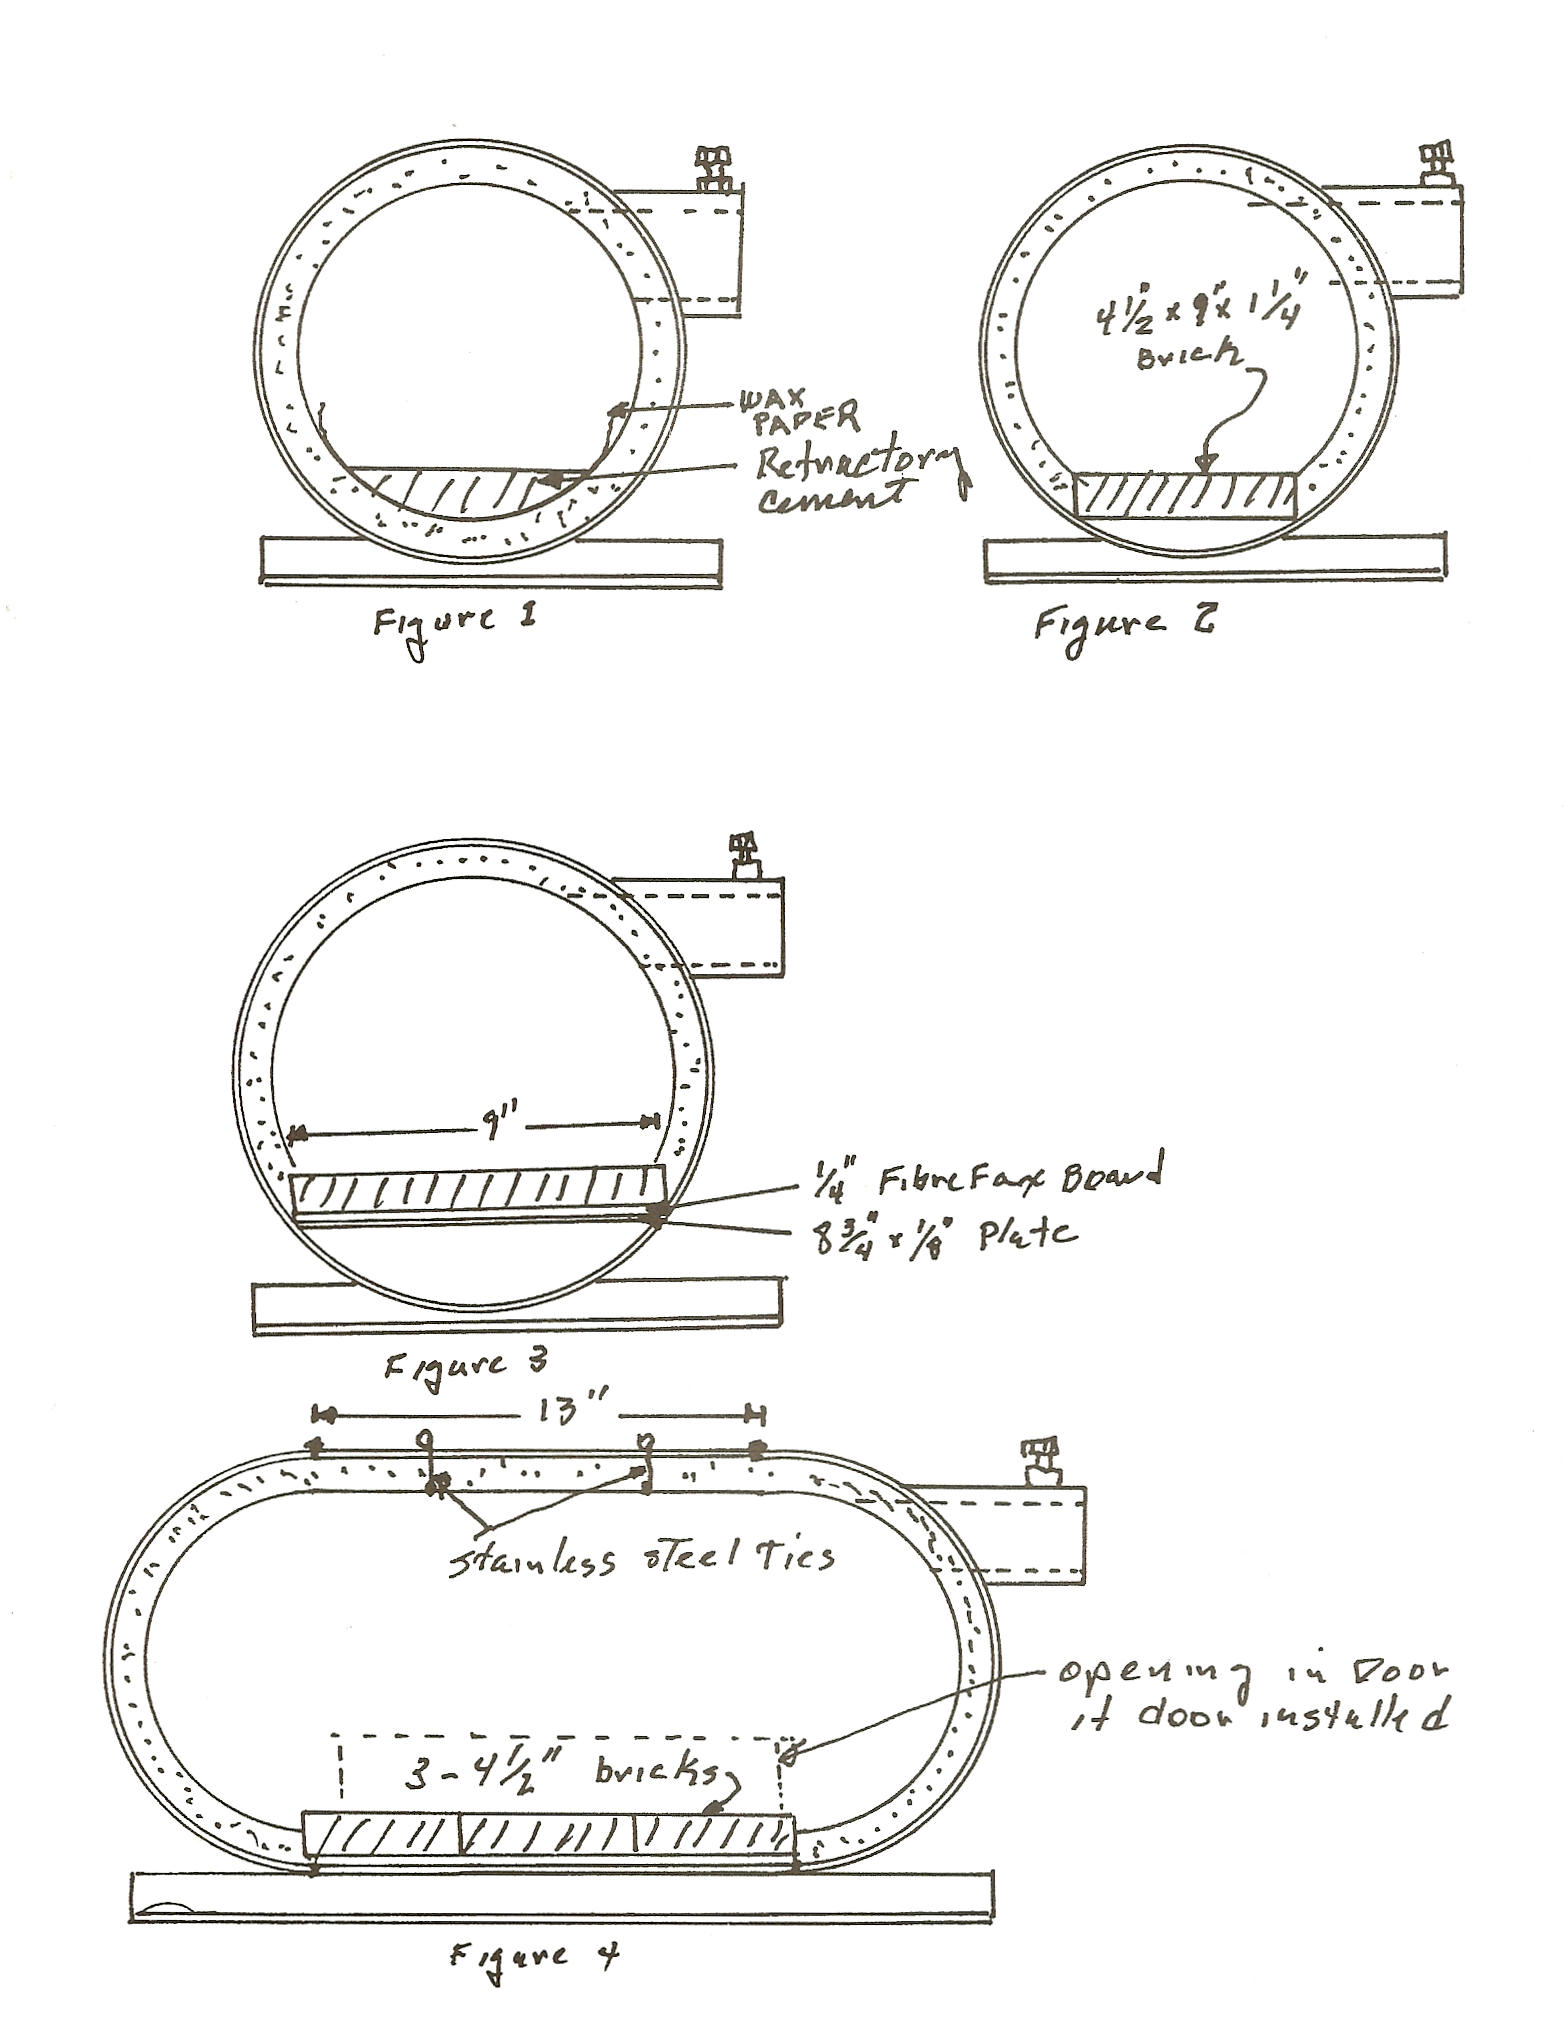 Peot Pipe (Gas) Forge and Propane Homemade Pipe Burner Design on homemade used oil burner, venturi mixer design, gas burner design, propane burner design,